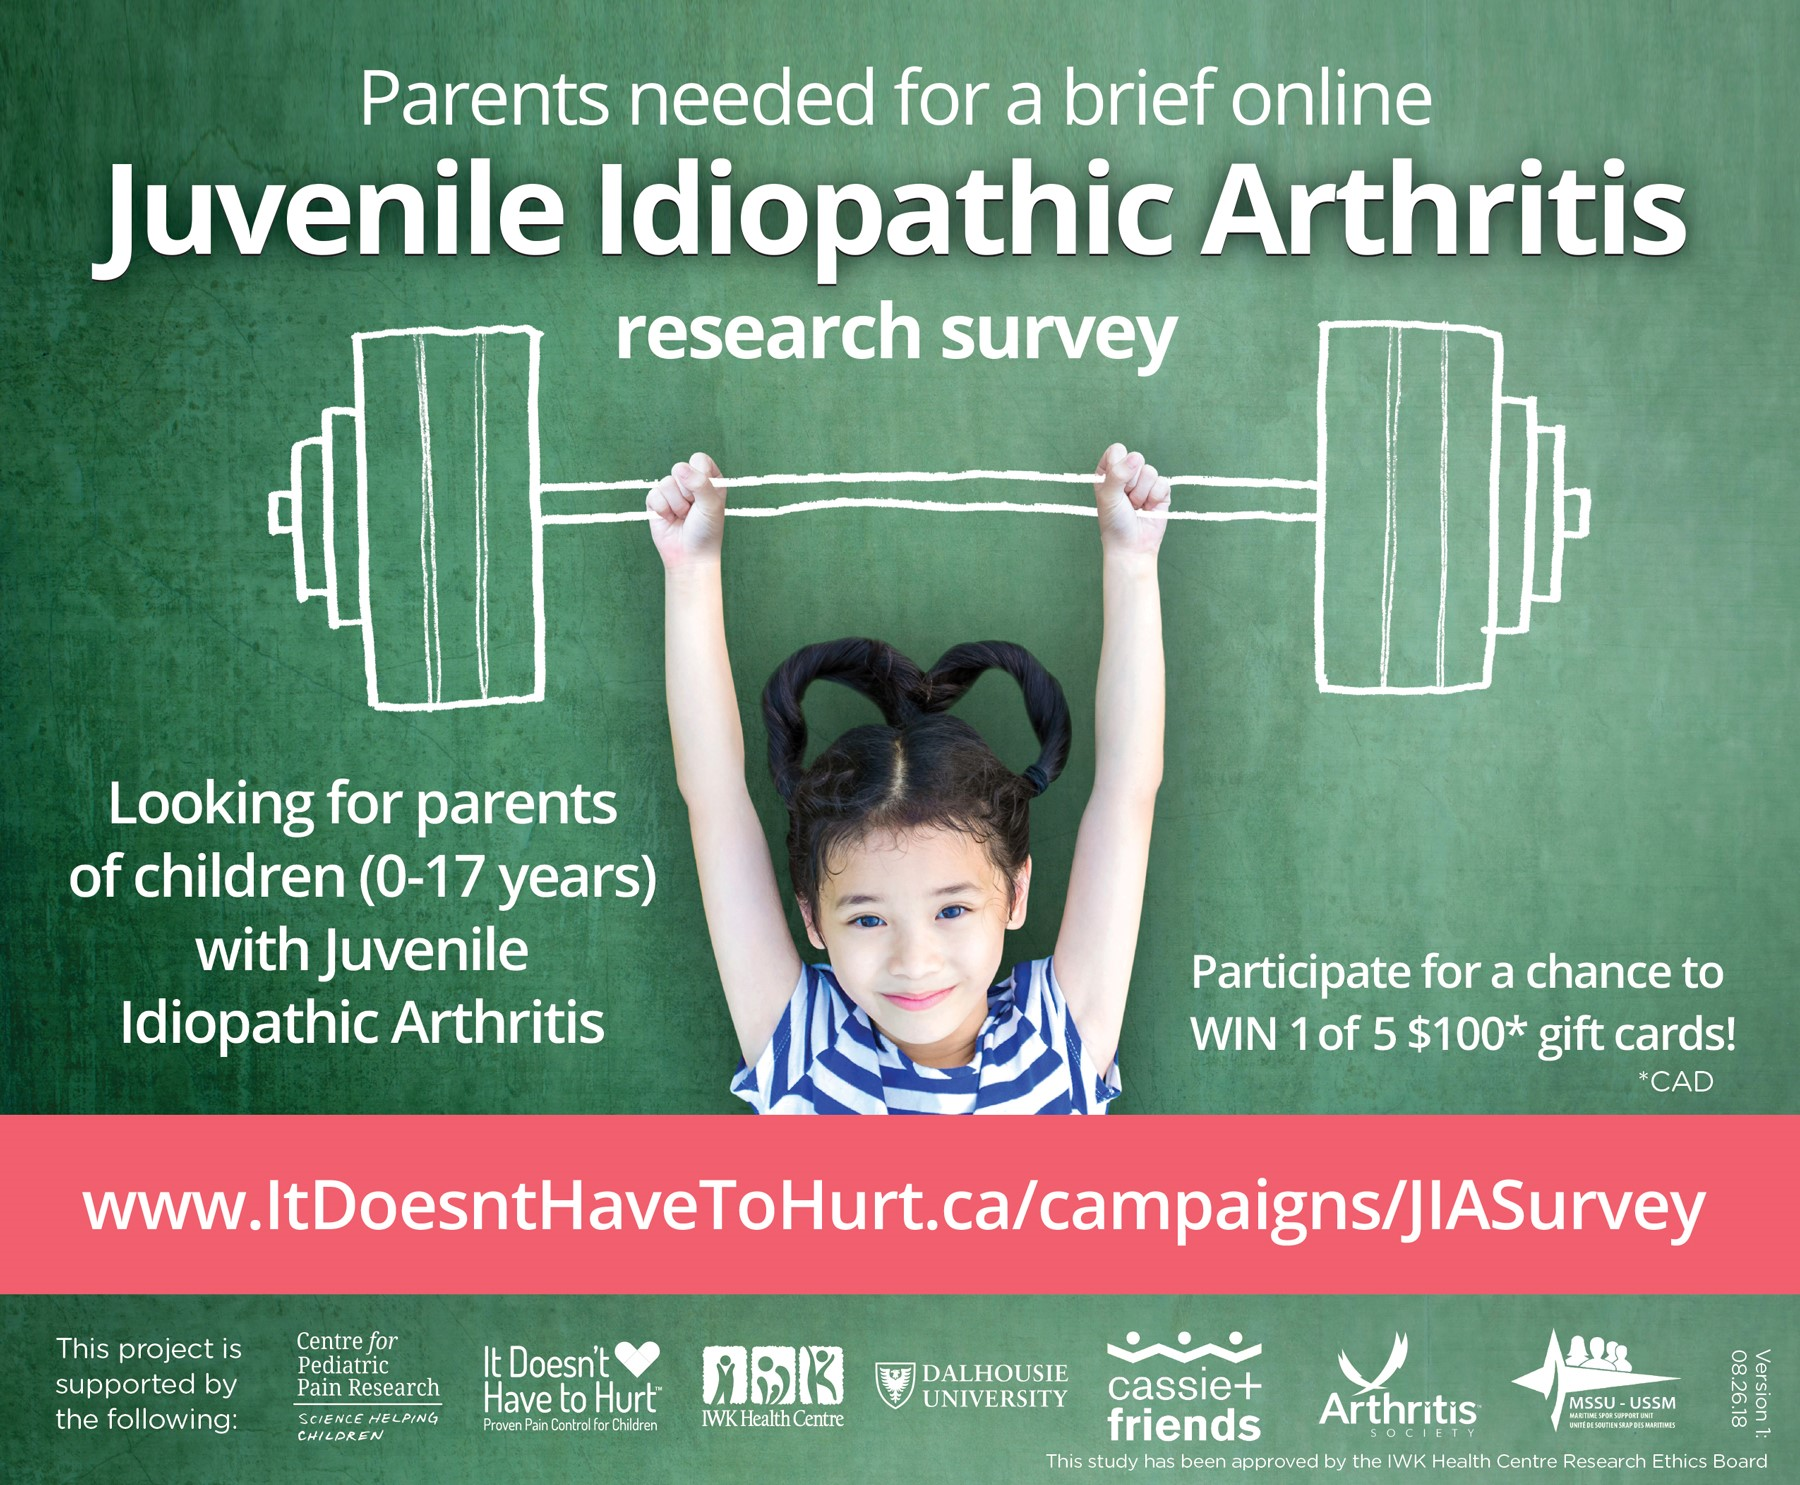 Your input needed! Help us relieve children's JIA pain - Cassie and